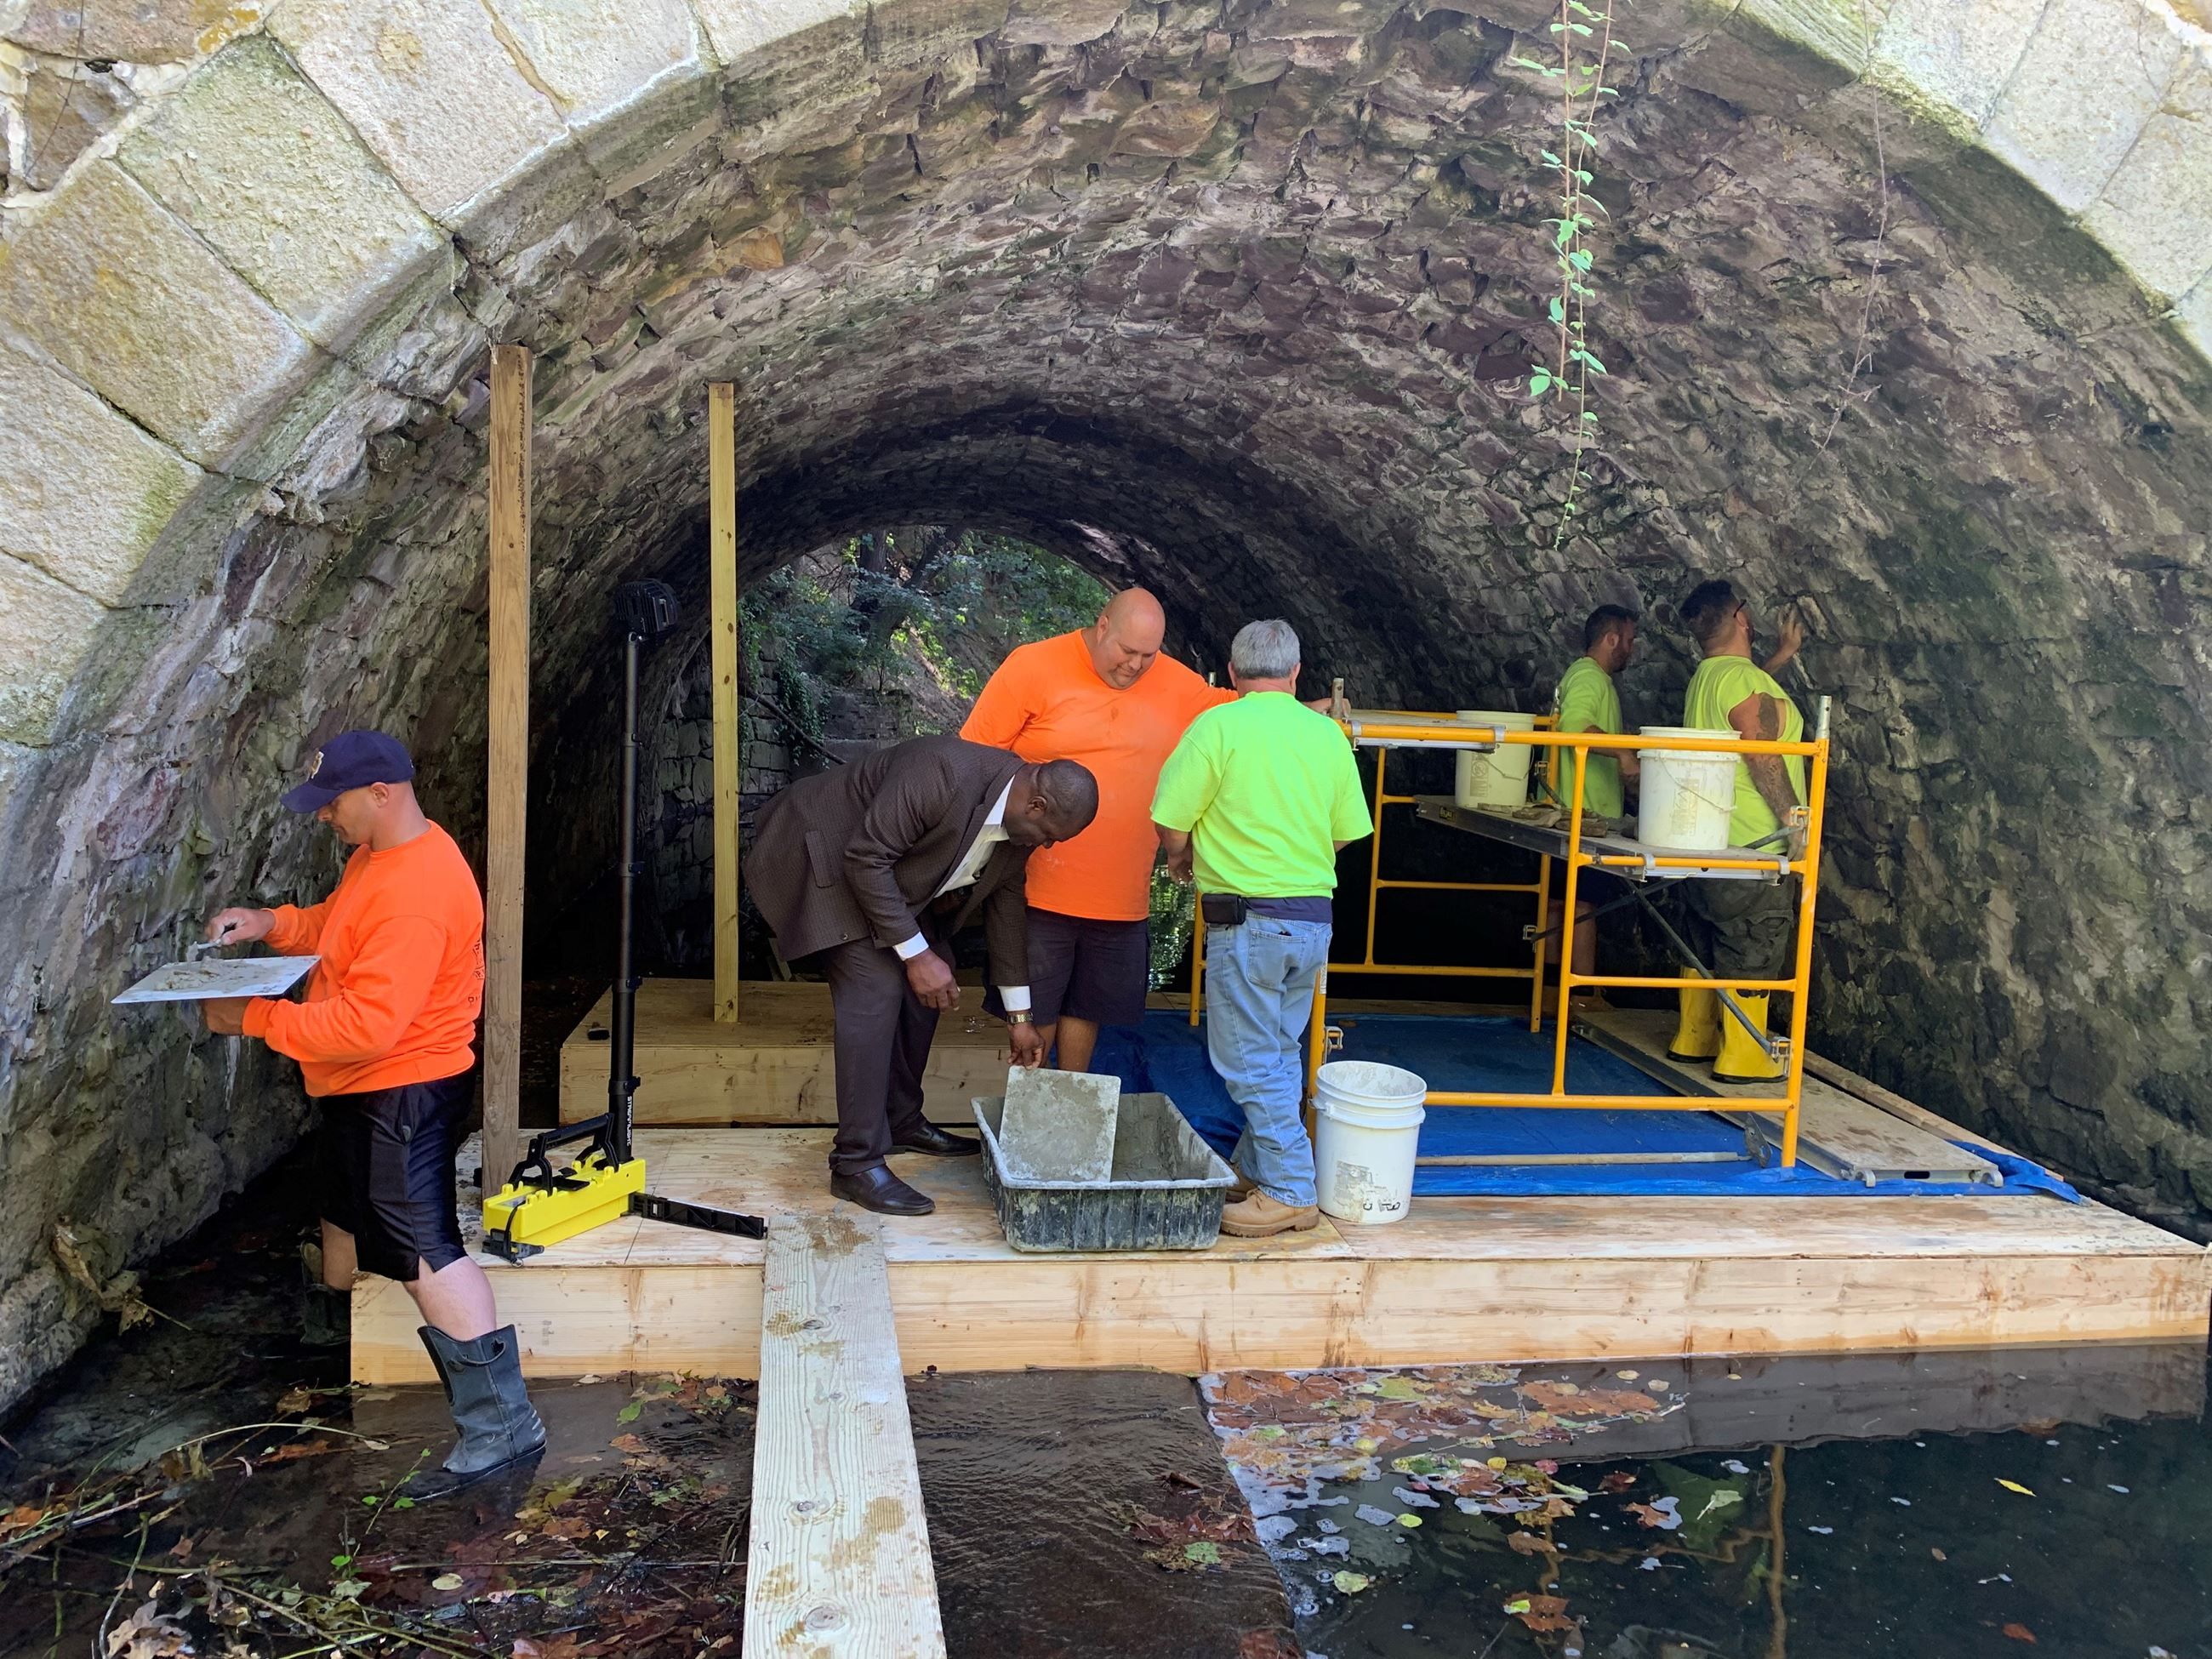 Public Works Repairing bridge